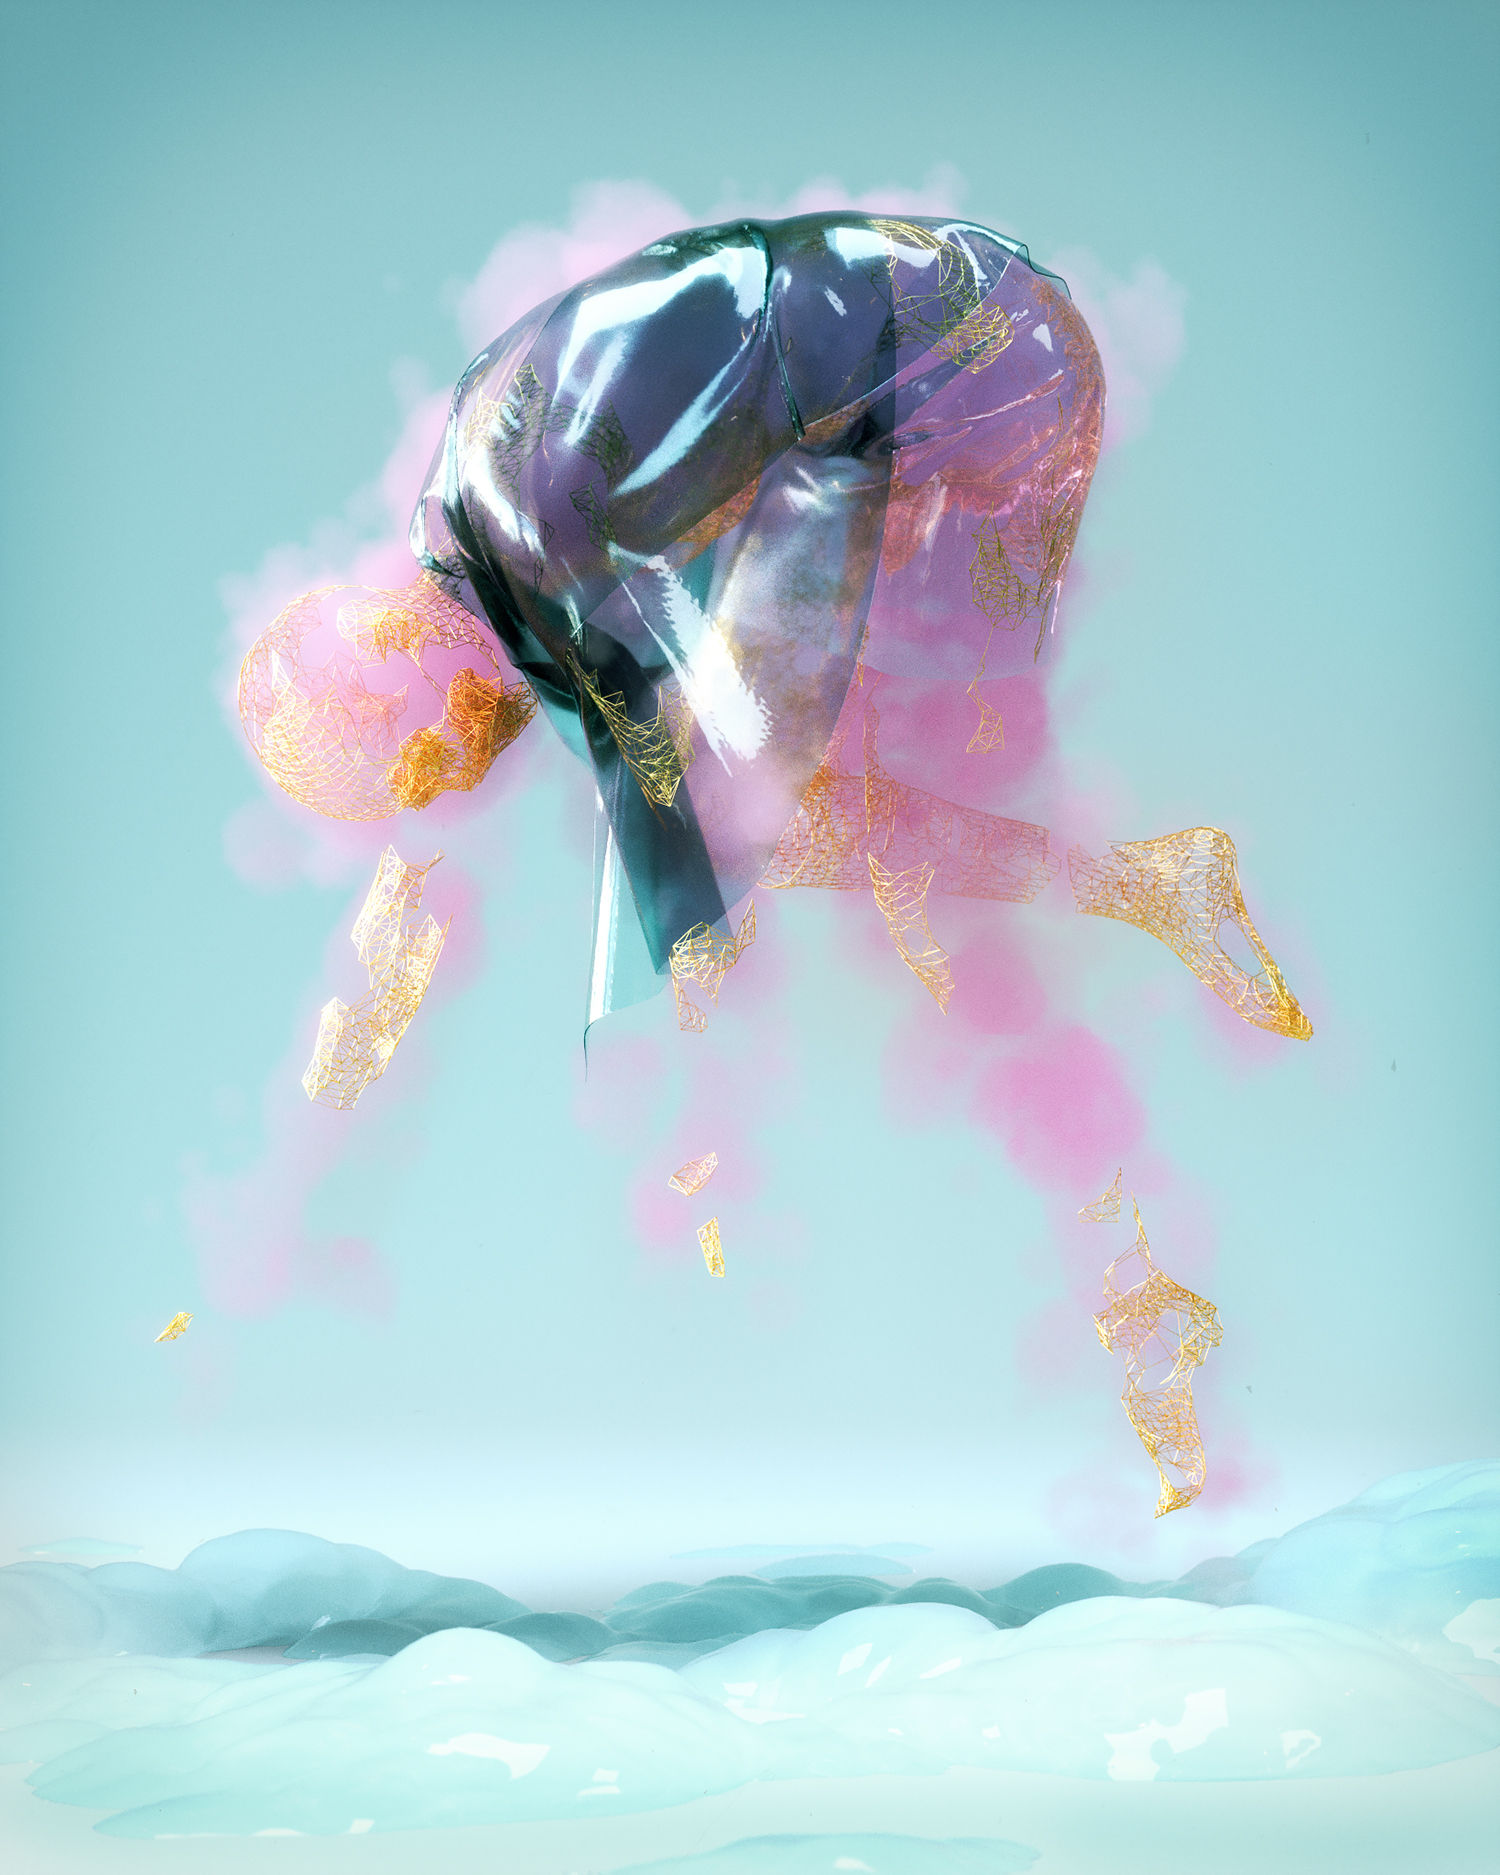 wake up, man floating in air, 3d digital art